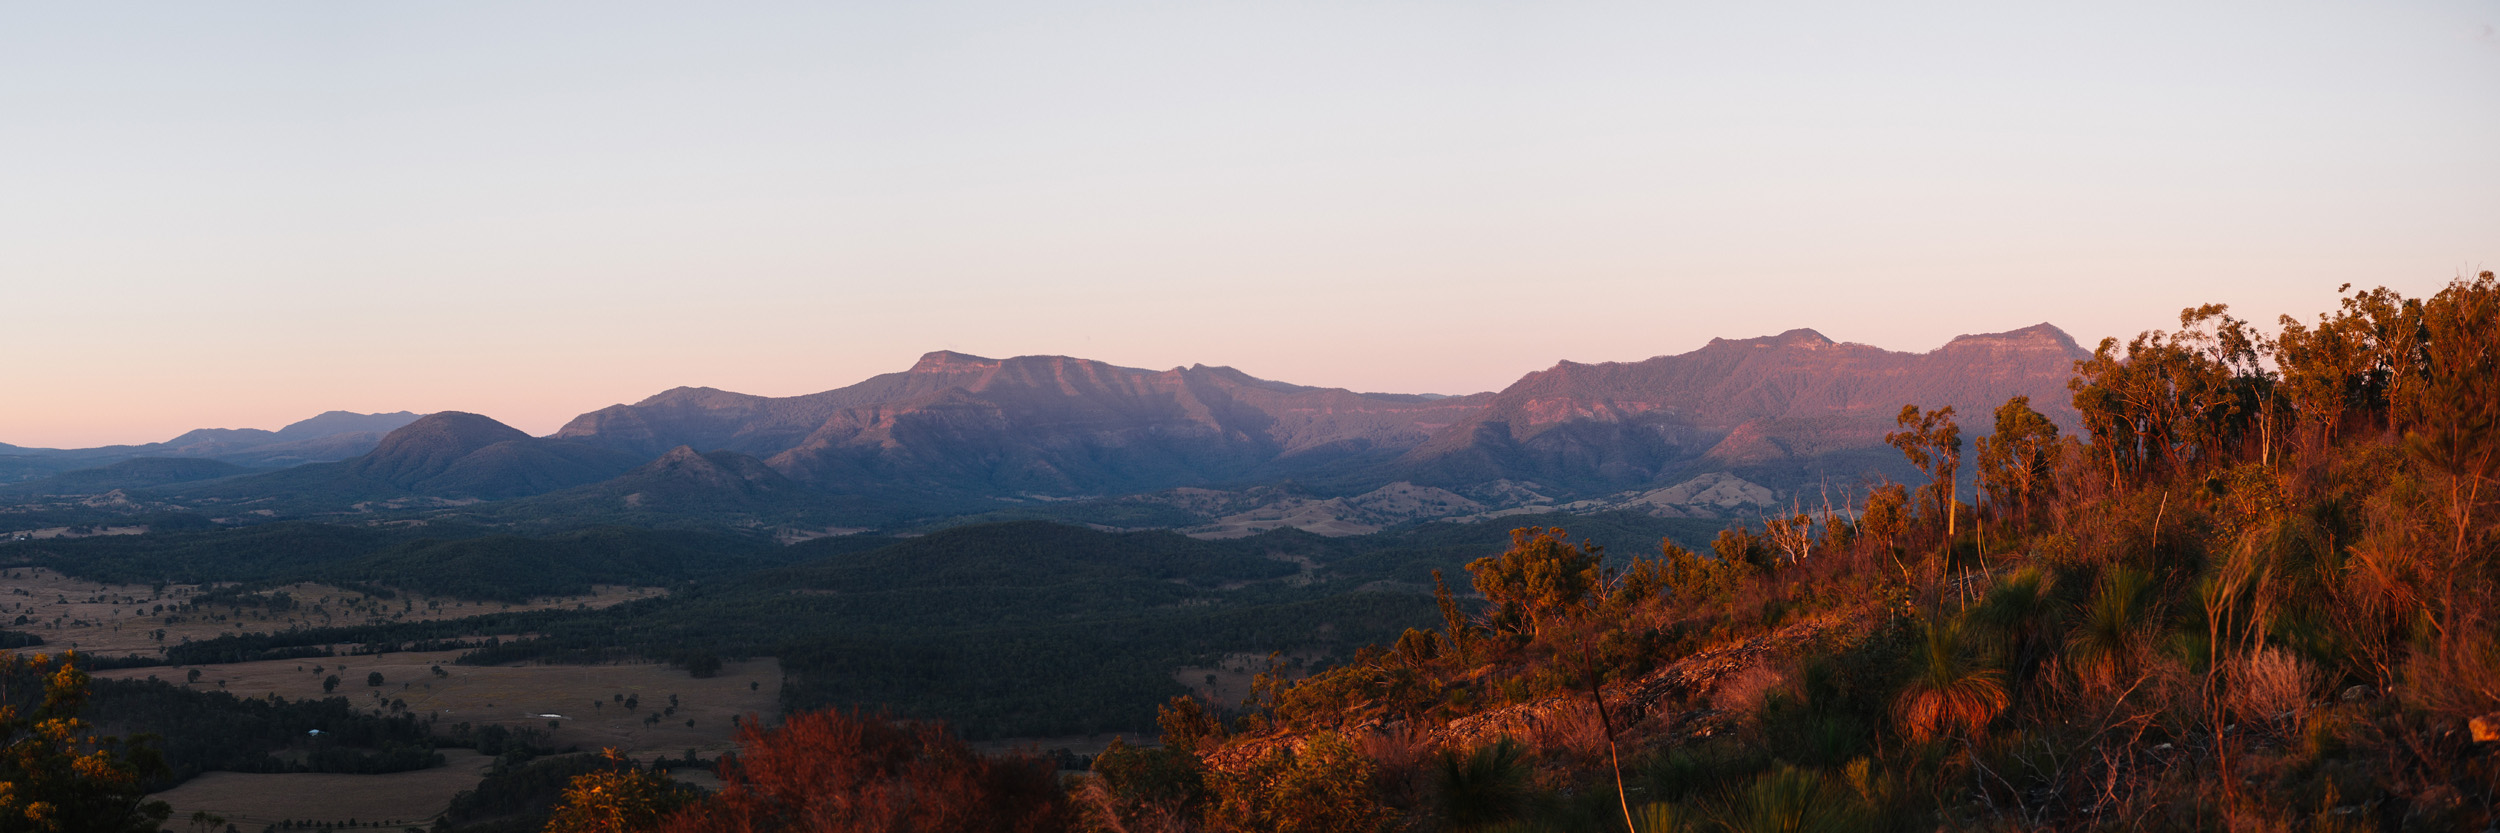 Mount Roberts from Mount Greville, QLD in mid-2016.